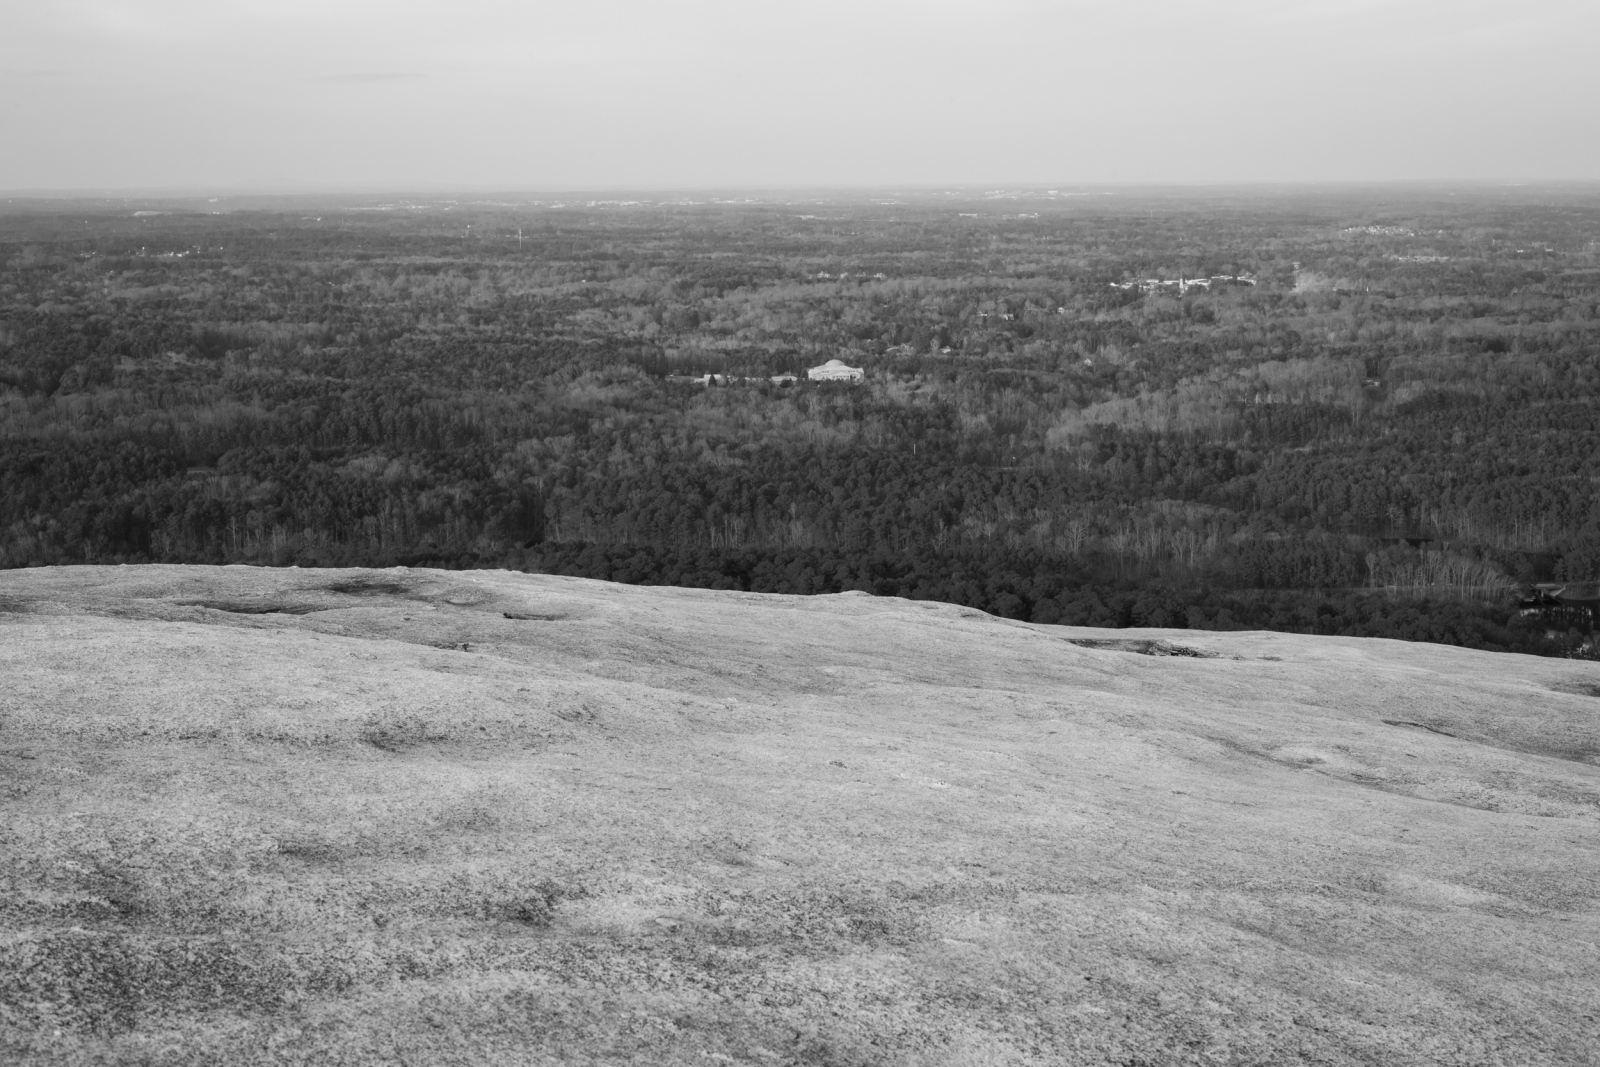 """Stone Mountain, GA. In 1915, William J. Simmons, a former Methodist preacher, launched a campaign to reestablish a new era of the Ku Klux Klan. Inspired by the film """"The Birth of a Nation,"""" Simmons led a small group to the summit of Stone Mountain to set a cross ablaze in advance of the film's debut. At the time of the Klan's resurgence, Stone Mountain was owned by Samuel Venable, who was a quarry operator. Mr. Venable was a fan of """"The Birth of a Nation,"""" and accompanied Simmons on that November night to become an active member of the Klan, hosting regular ceremonies on the mountain."""